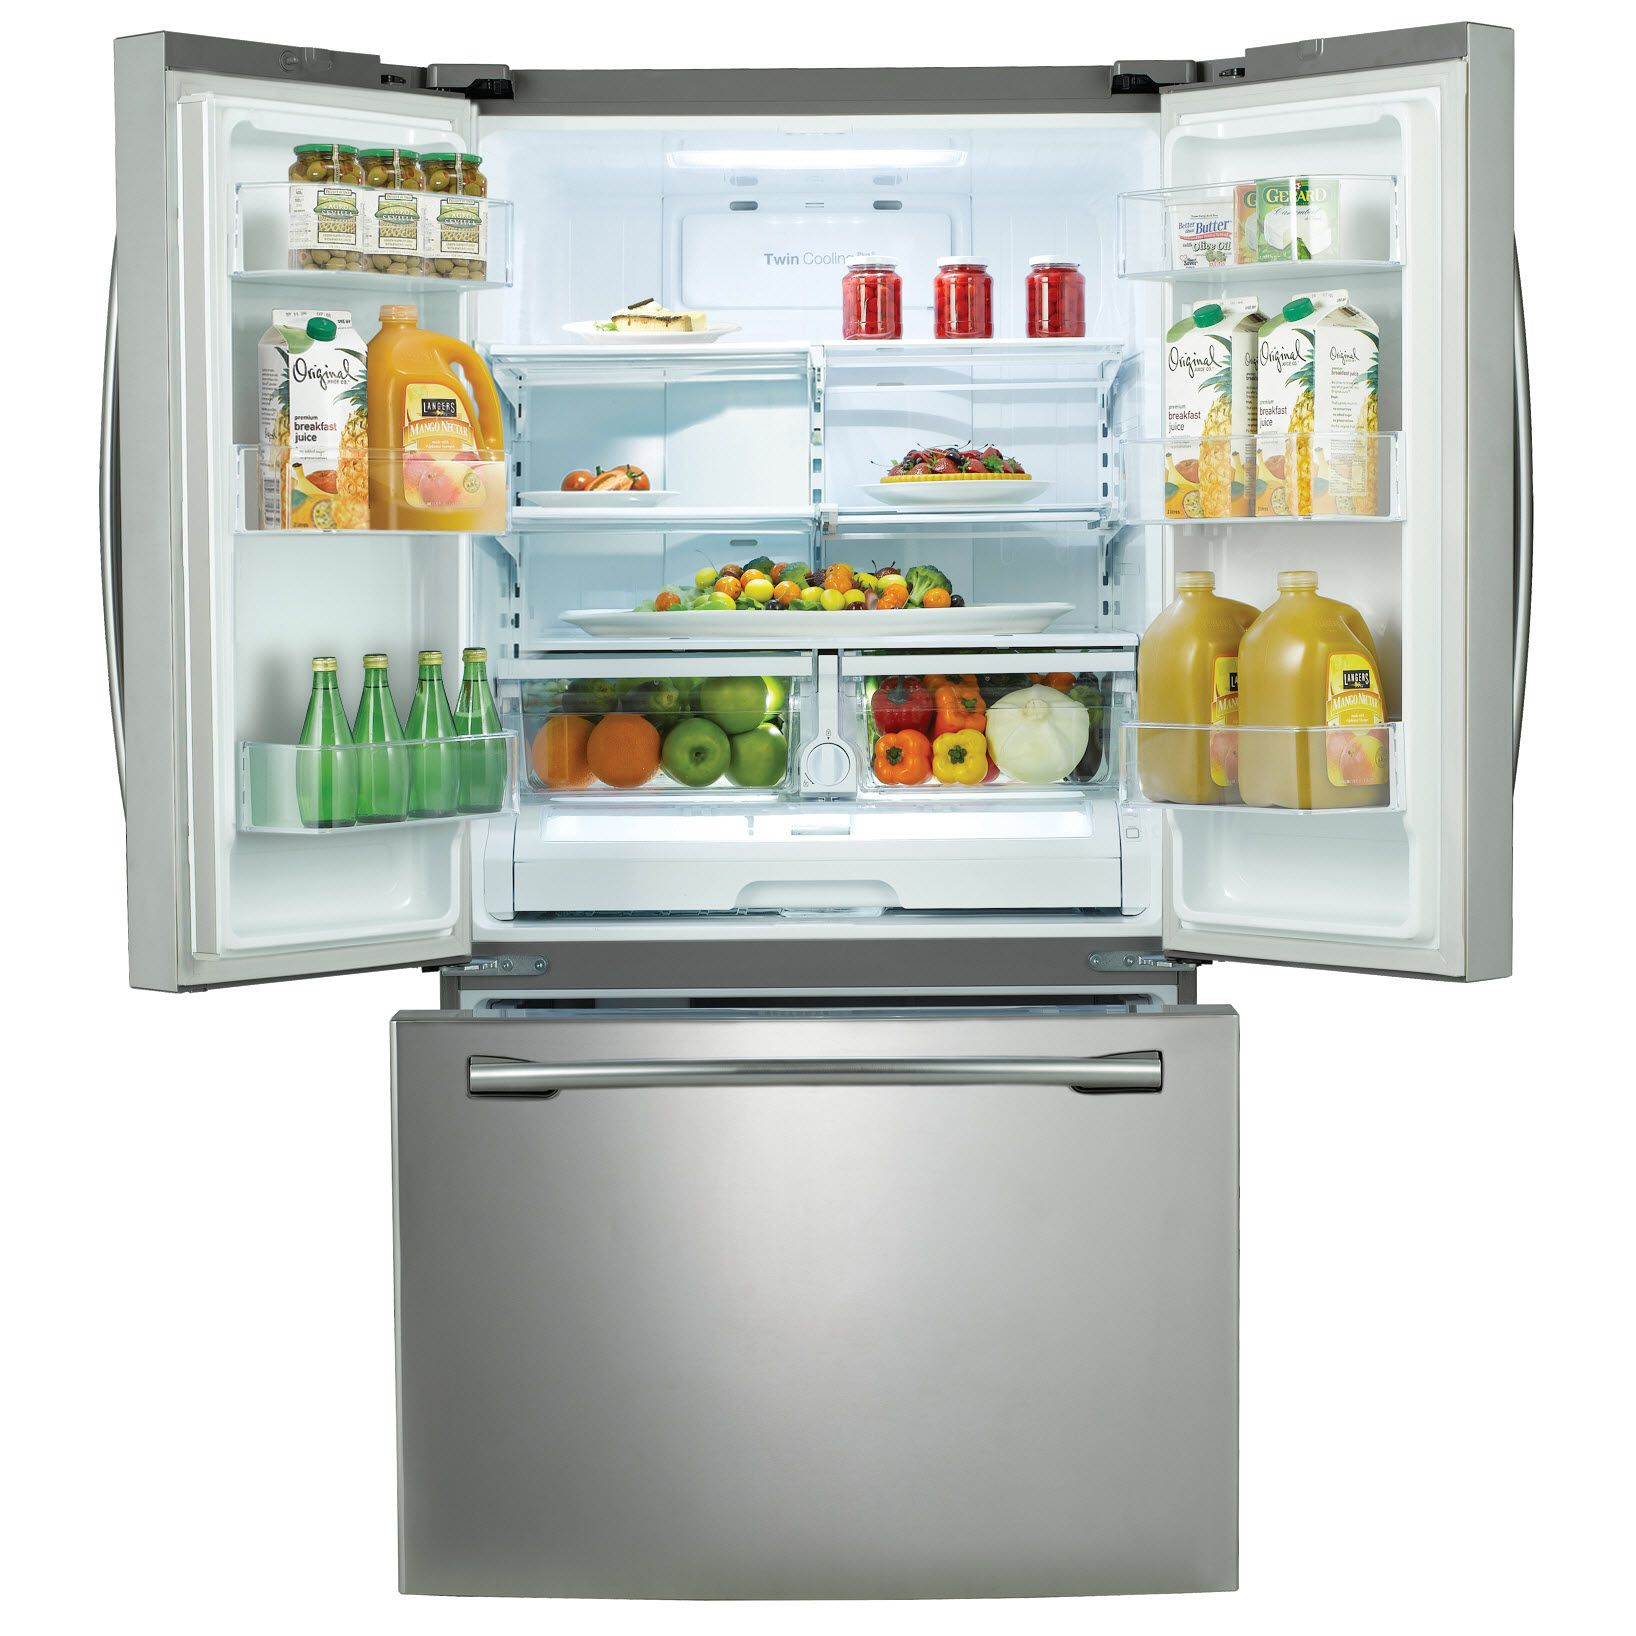 Samsung 26 cu.ft. French Door Refrigerator w/ Internal Filtered Water Dispenser - Stainless Steel